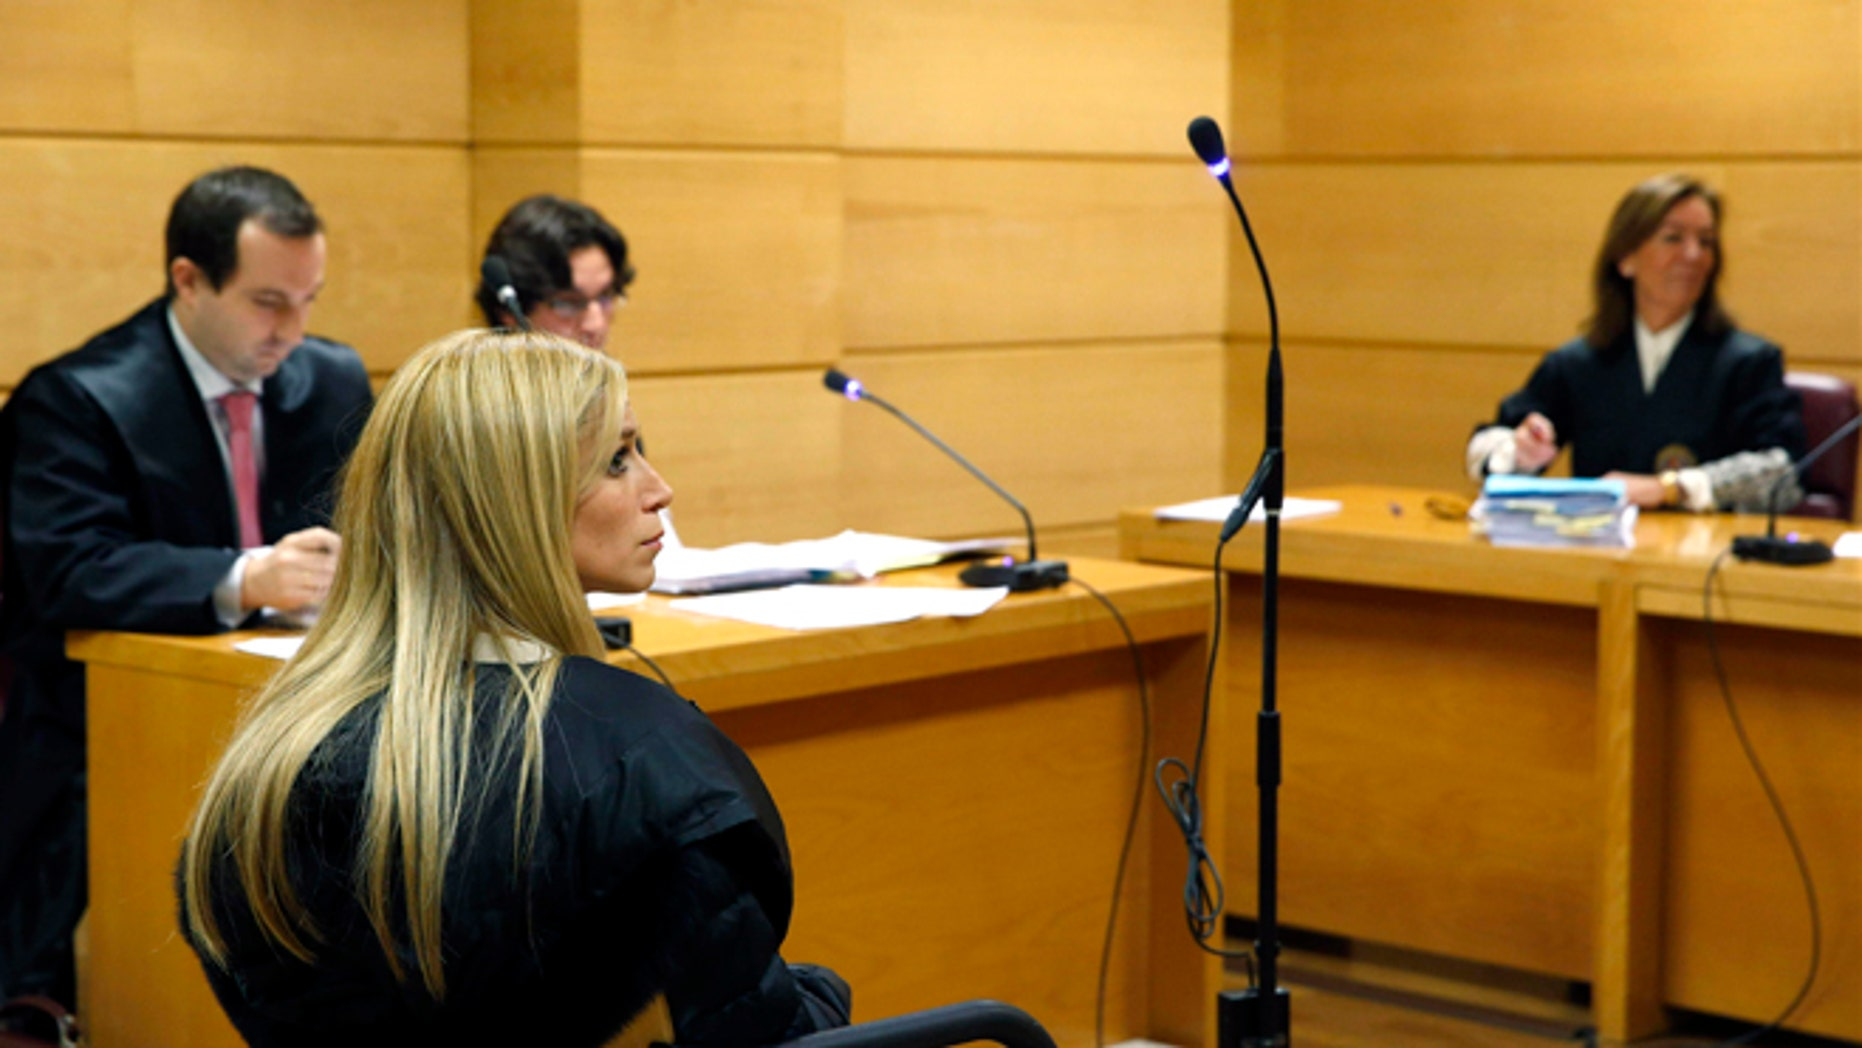 Aurea Vázquez Rijos of  Puerto Rico, left  sits inside a court room at the National Court in Madrid, Wednesday Dec. 18, 2013. (AP Photo/Javier Lizon, Pool)